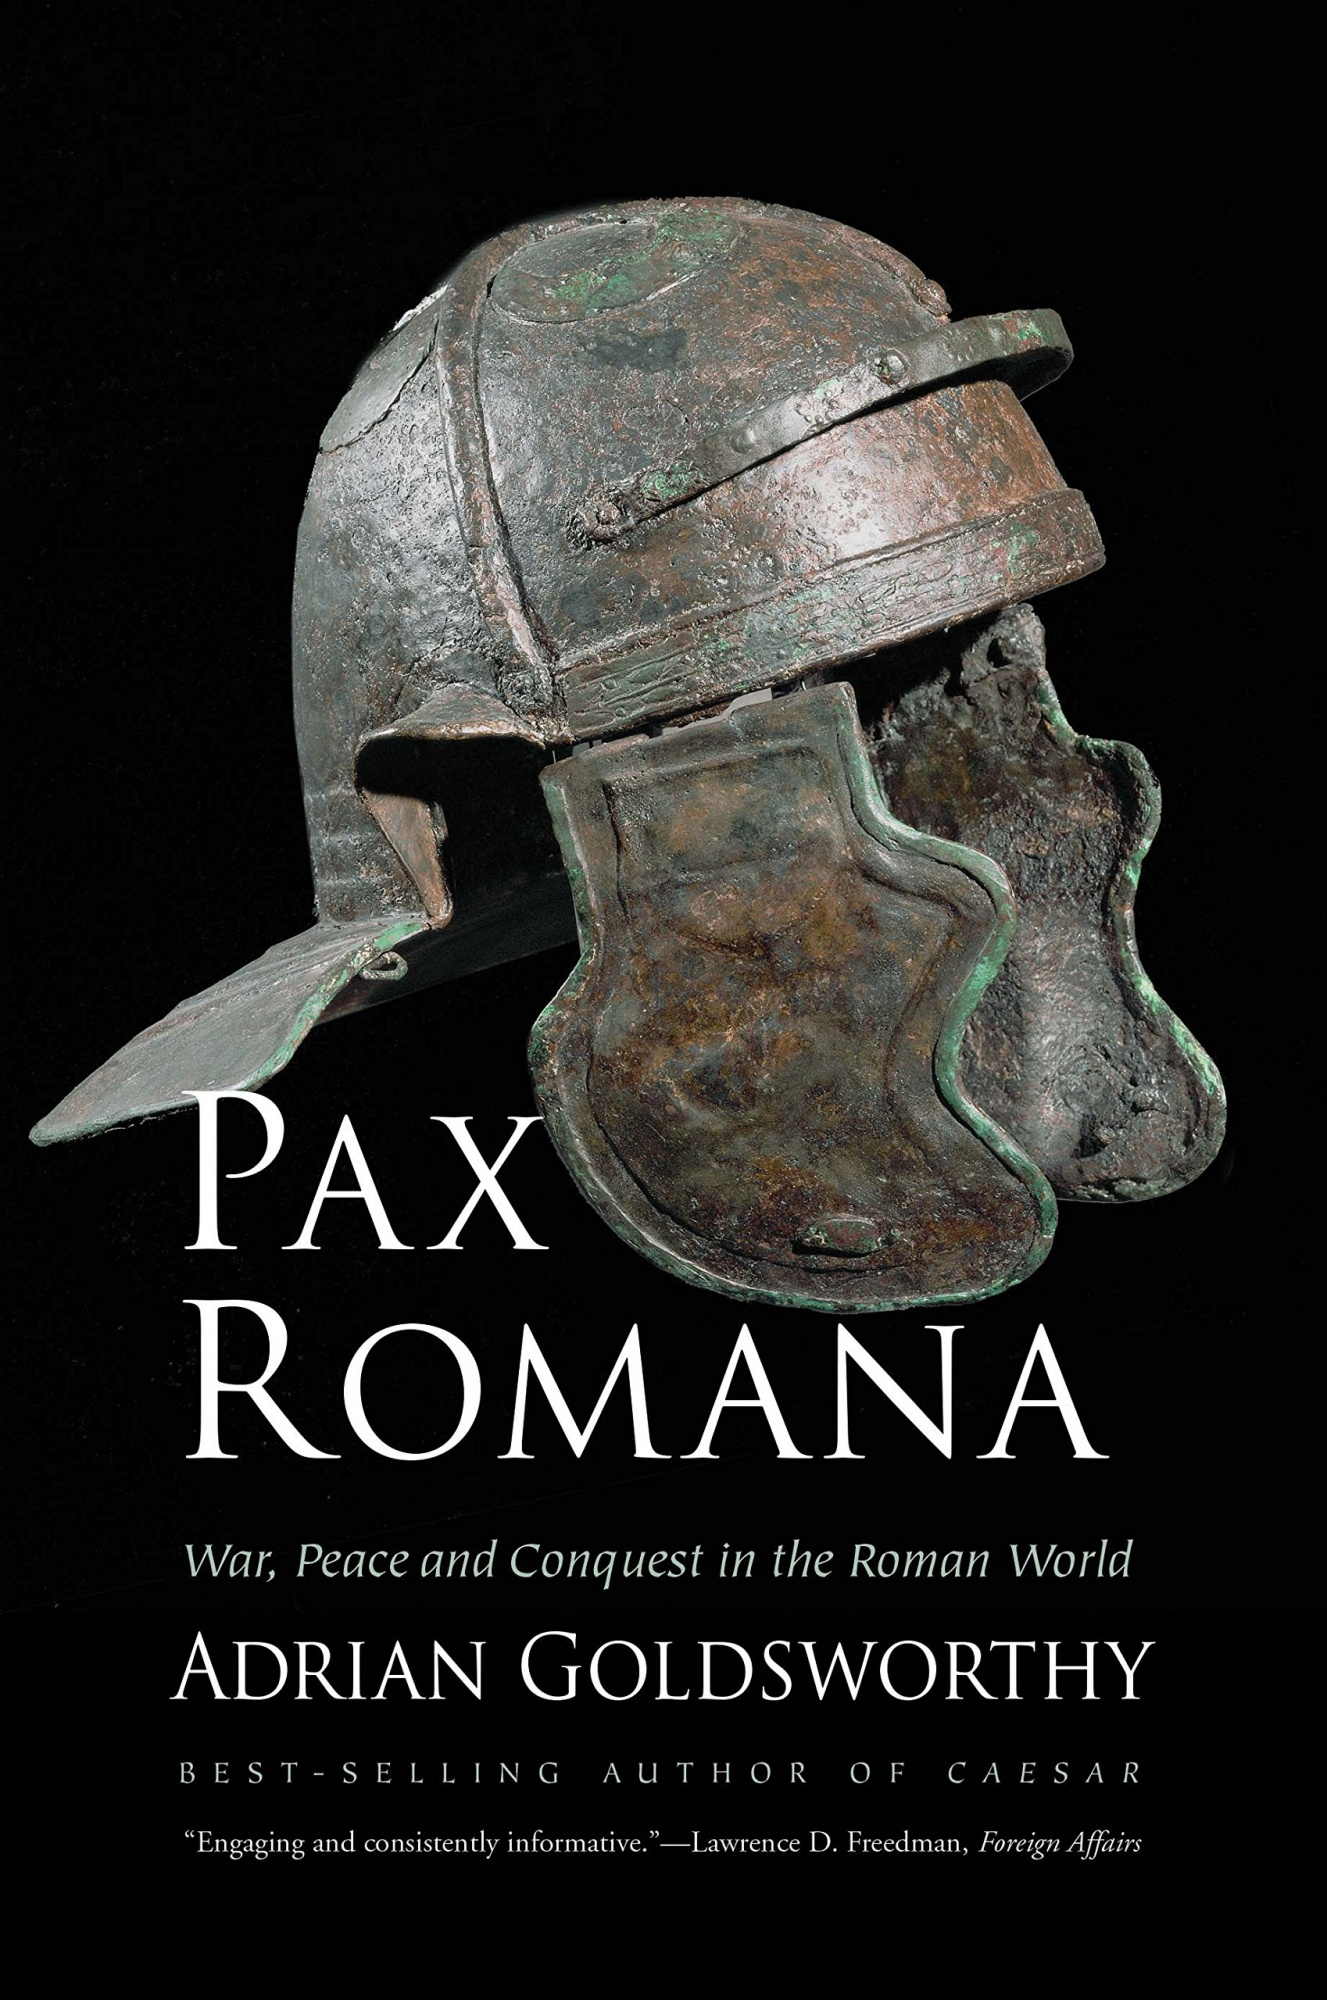 Pax Romana: War, Peace and Conquest in the Roman World by Adrian Goldsworthy, ISBN: 9780300230628